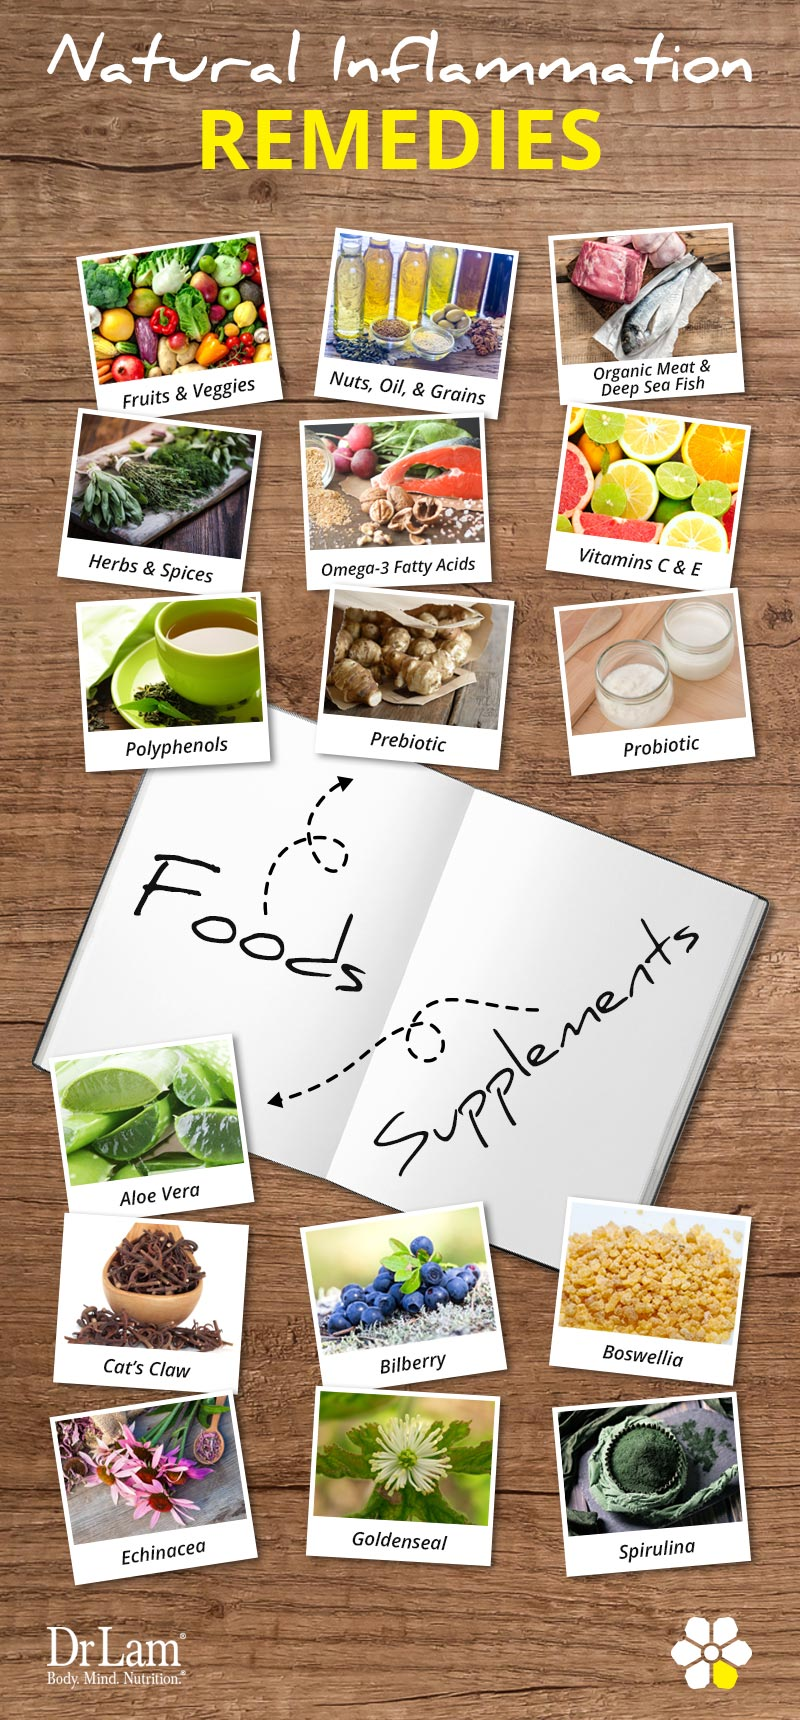 Check out this easy to understand infographic about natural inflammation remedies